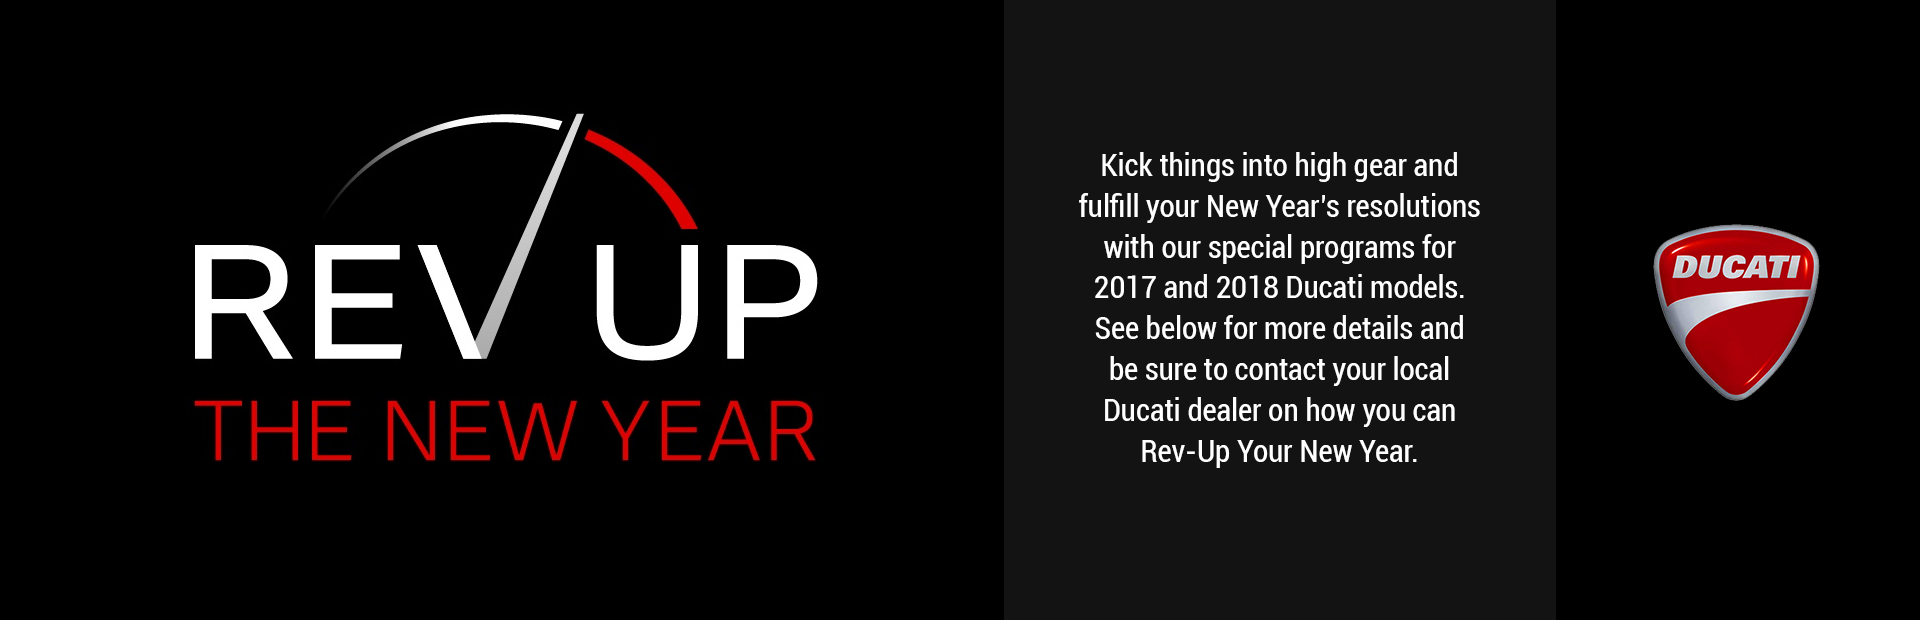 Ducati: Rev Up The New Year